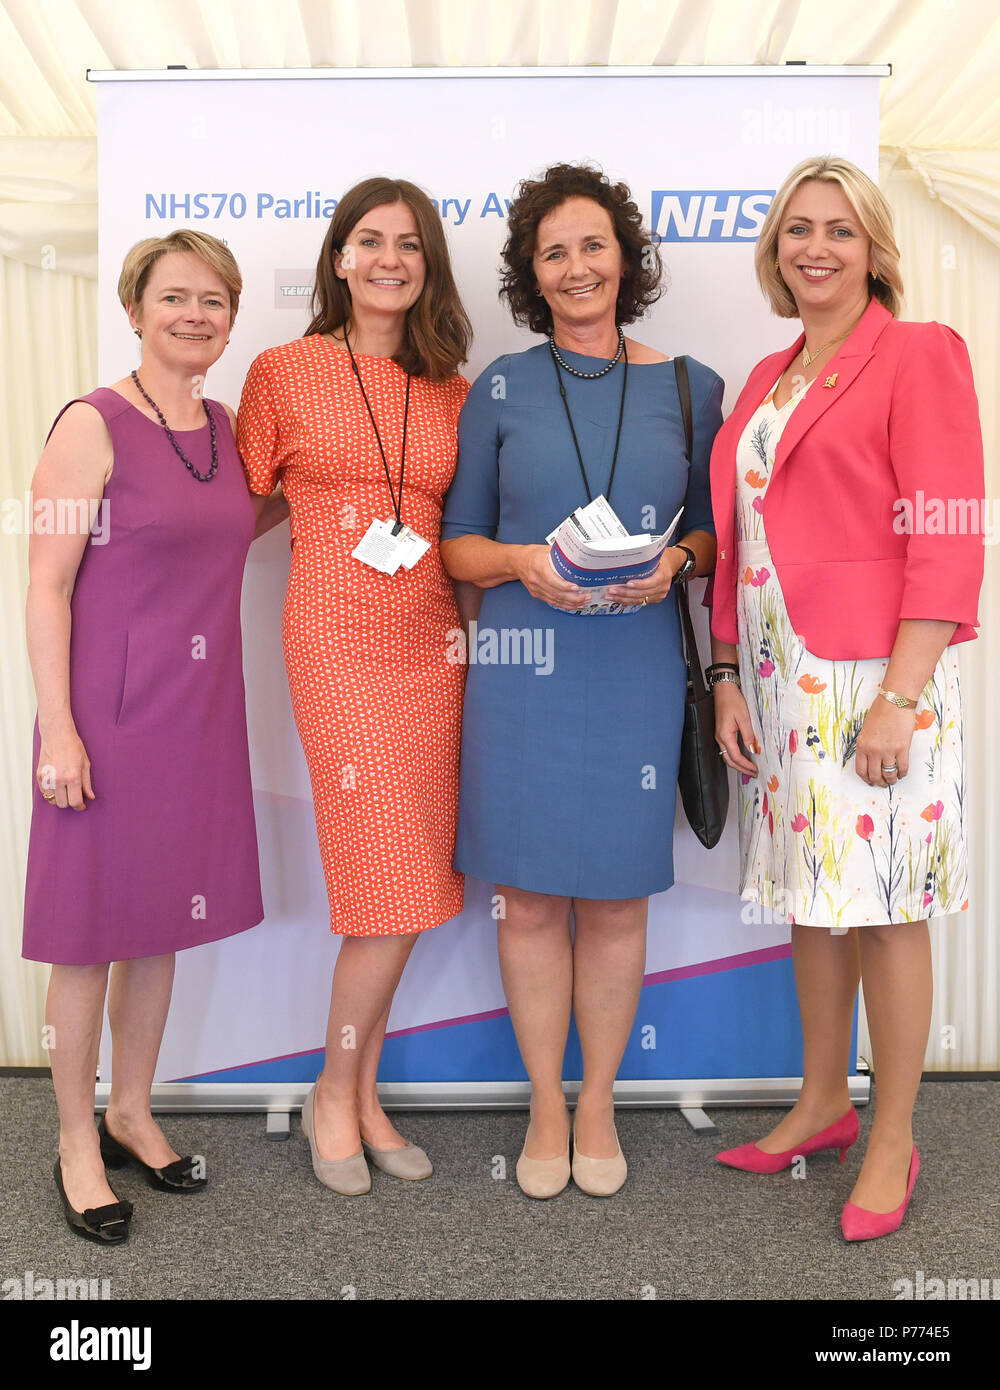 Susan Blackmore of Cumbria Health On Call receives her Excellence in Primary Care Award from Dr Helen Stokes Lampard (first right) and Baroness Dido Harding (first left) during the NHS70 parliamentary awards for the 70th anniversary of the NHS at the House of Commons in Westminster, London. - Stock Image